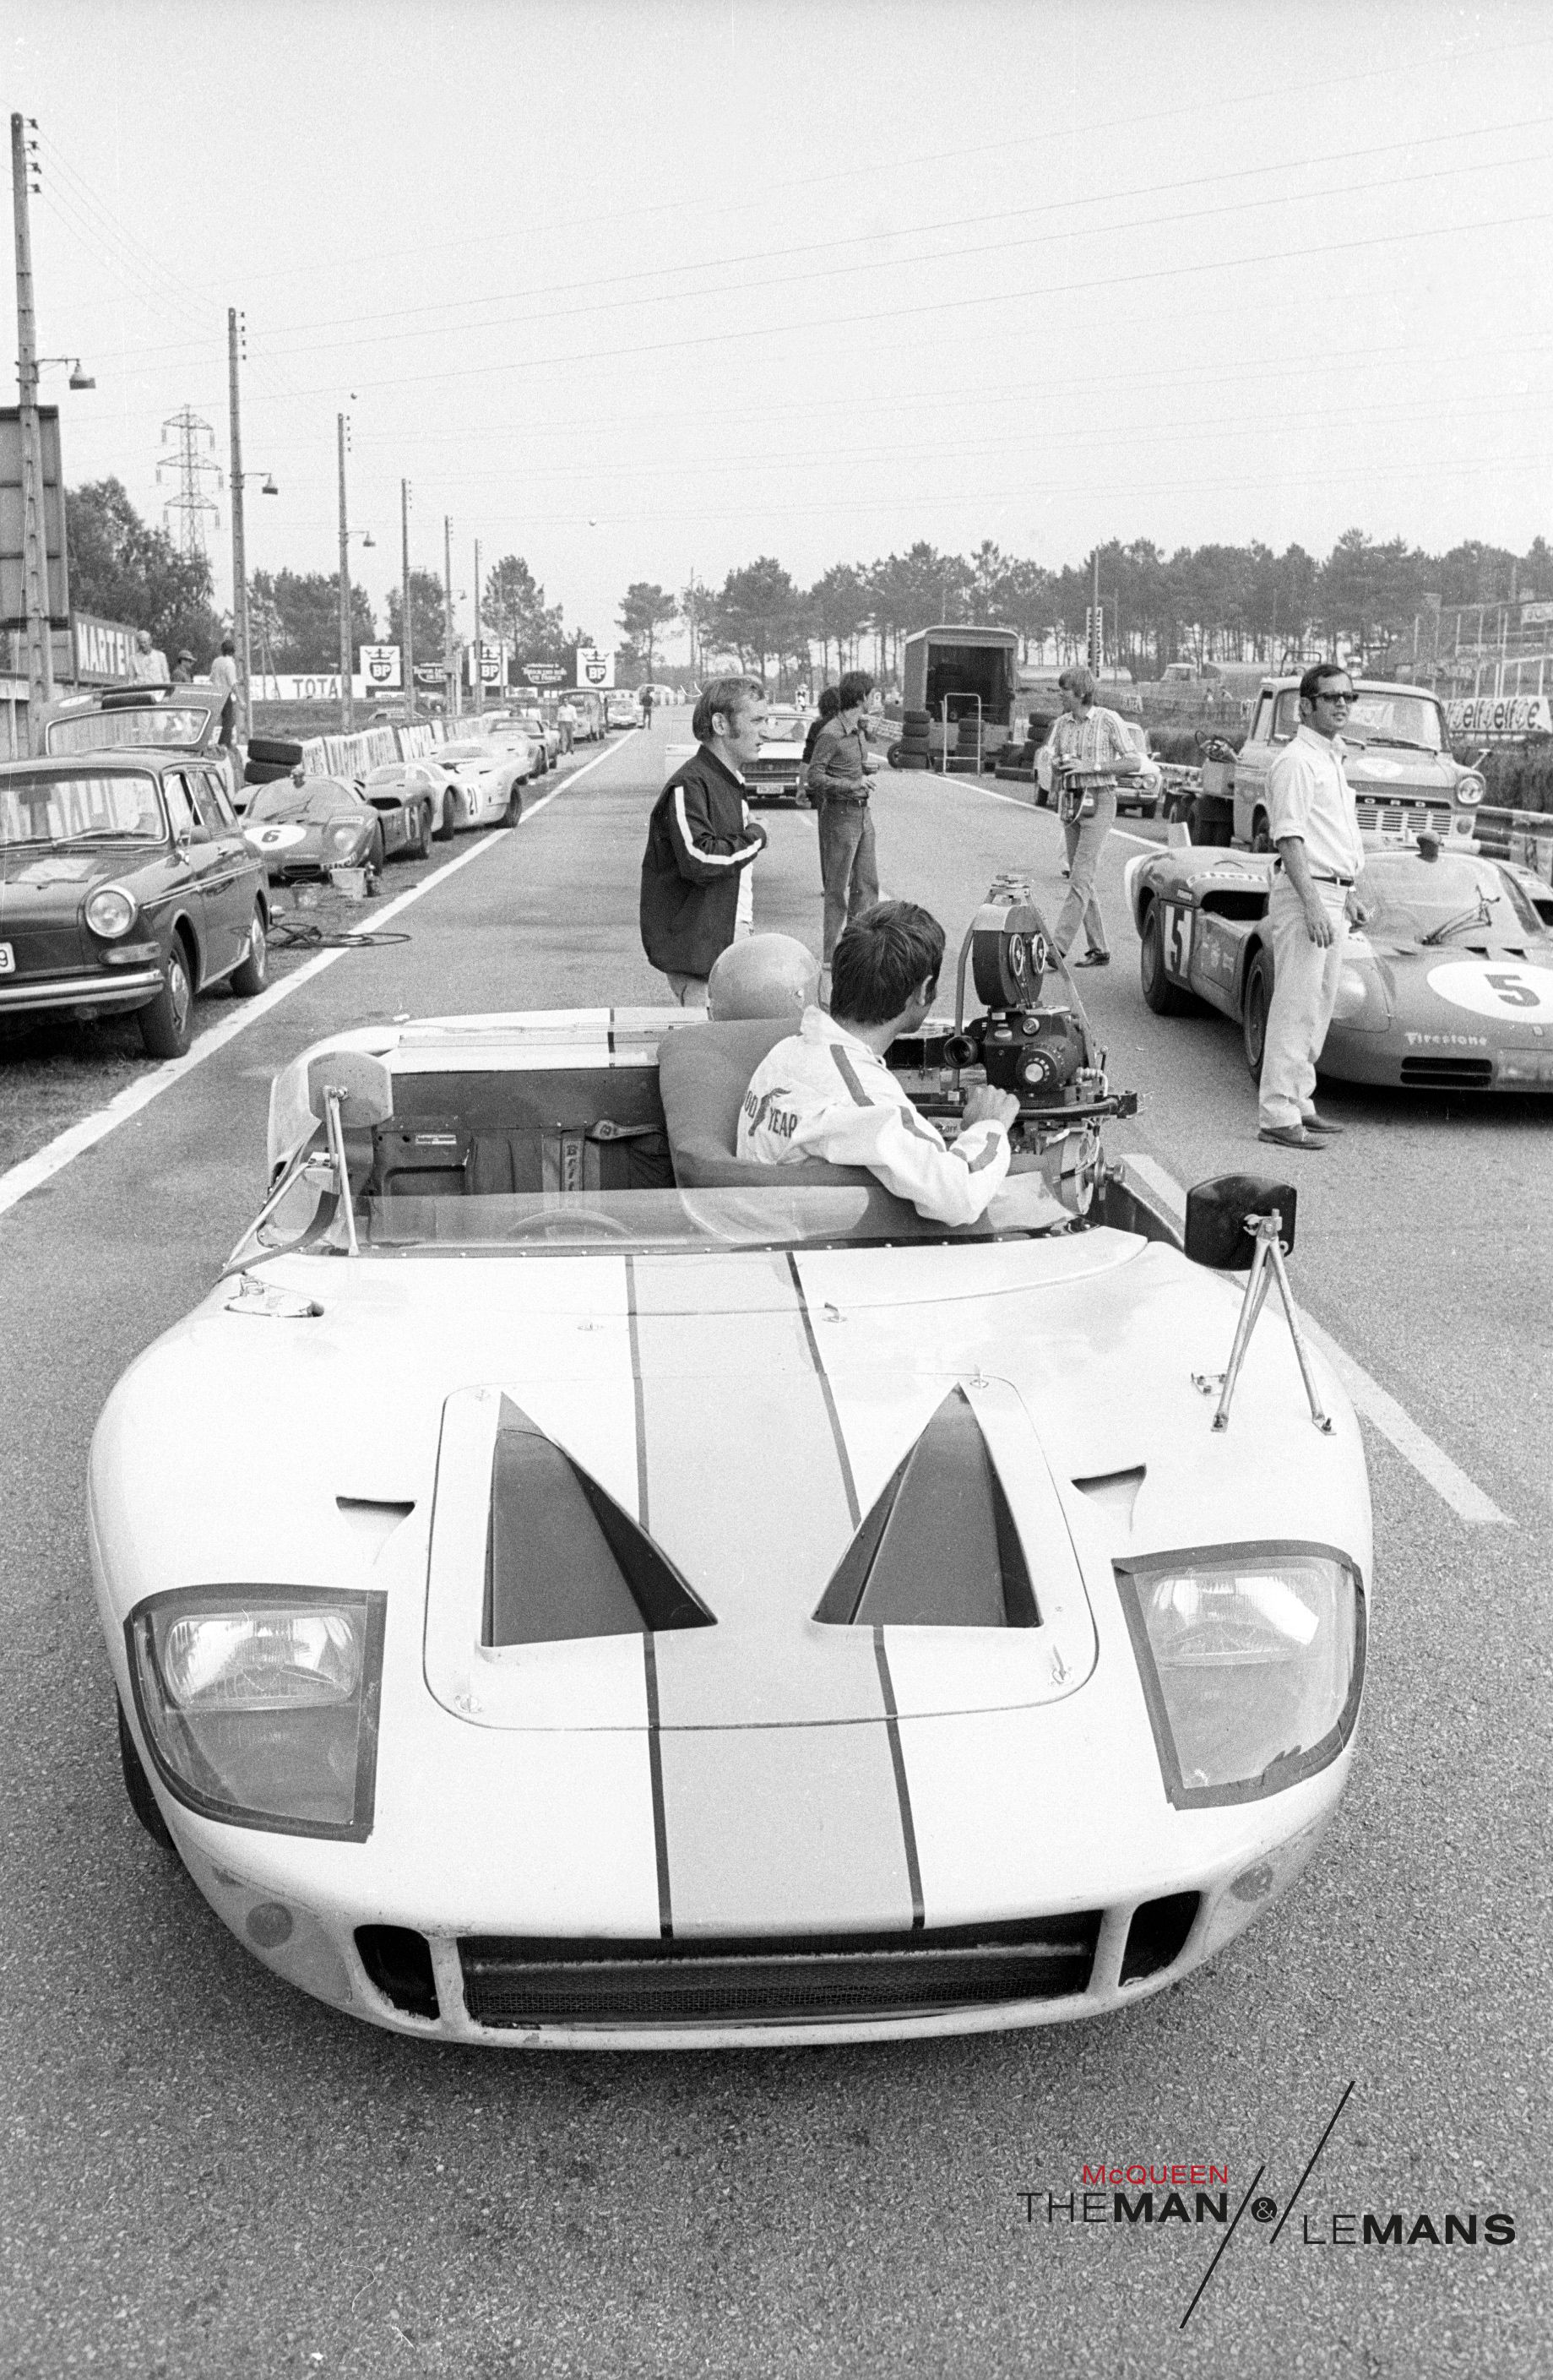 The Camera Mans Ford Gt40 On The Track Ready To Film For Le Mans Http Www Themanlemans Com Utm Source Pinterest Utm Ford Gt Ford Gt40 Steve Mcqueen Cars